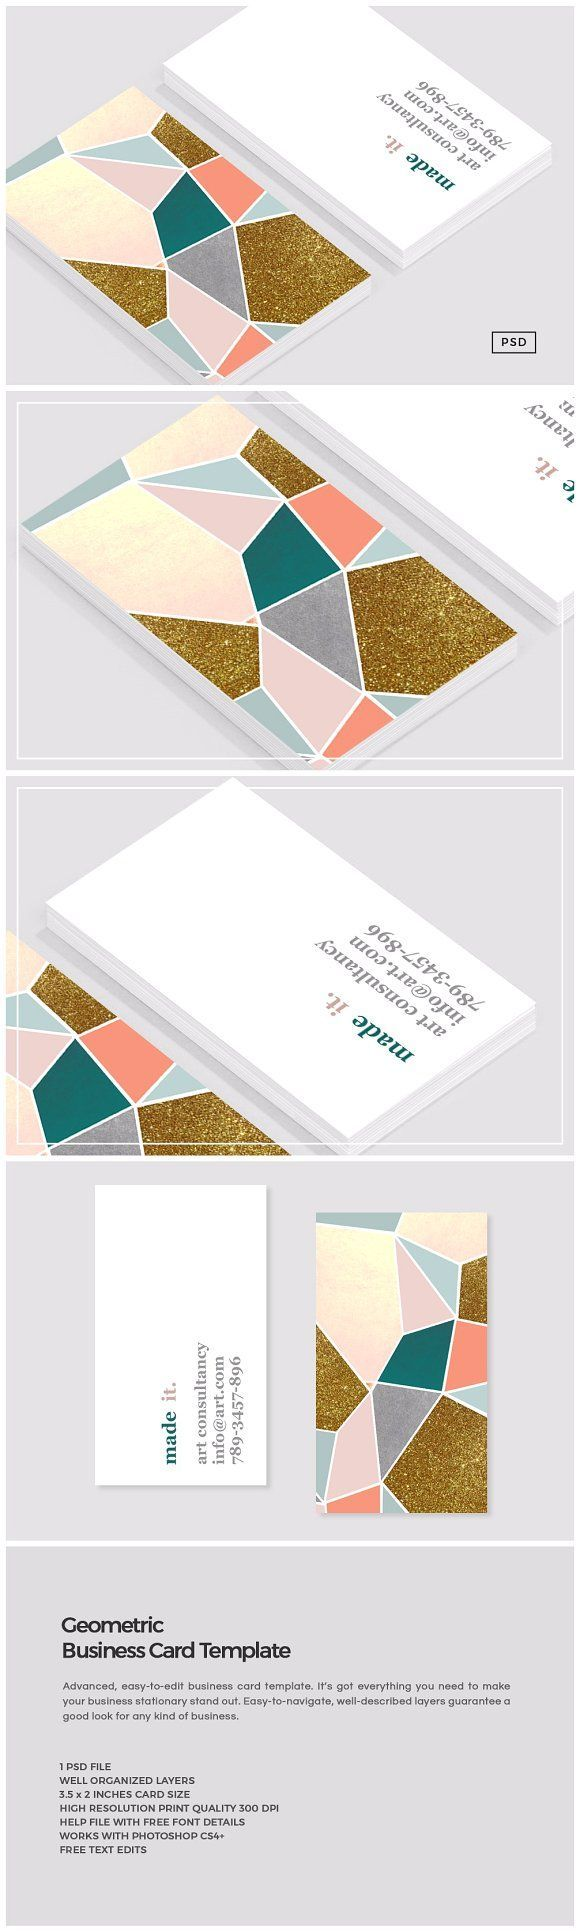 60 best Creative Business Cards images on Pinterest | Business cards ...